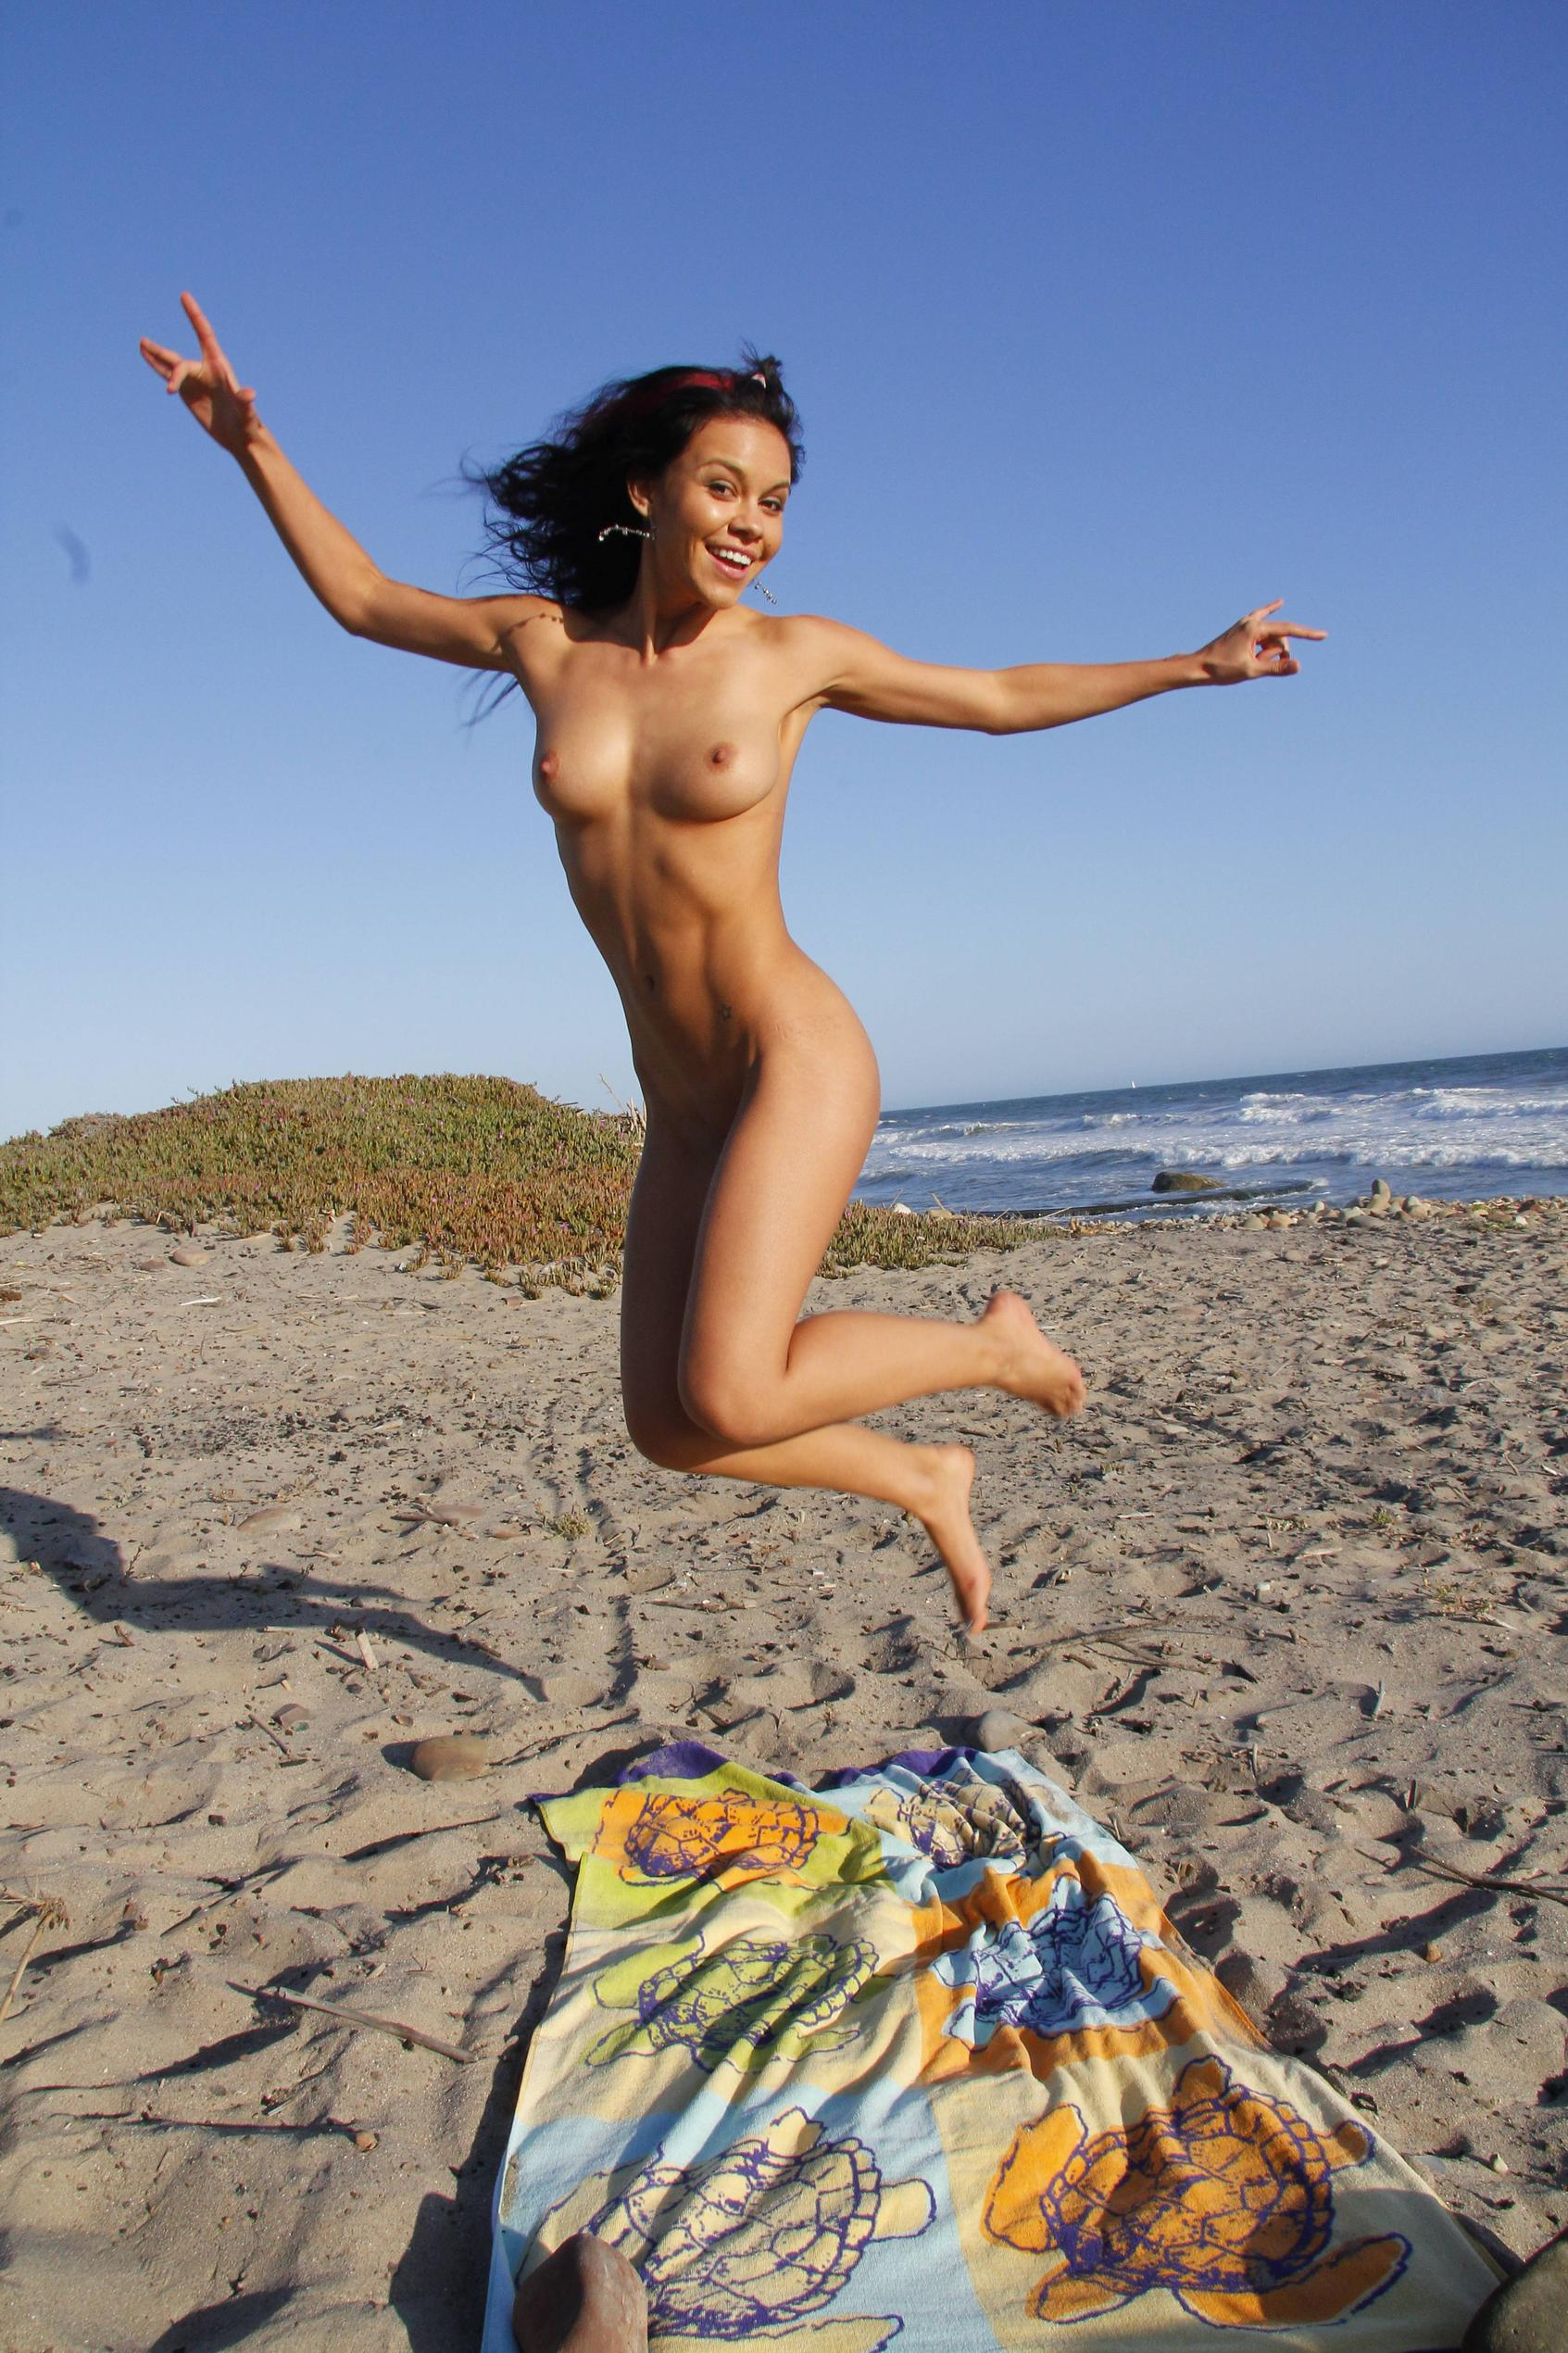 Playful hot girl jumping naked on the beach